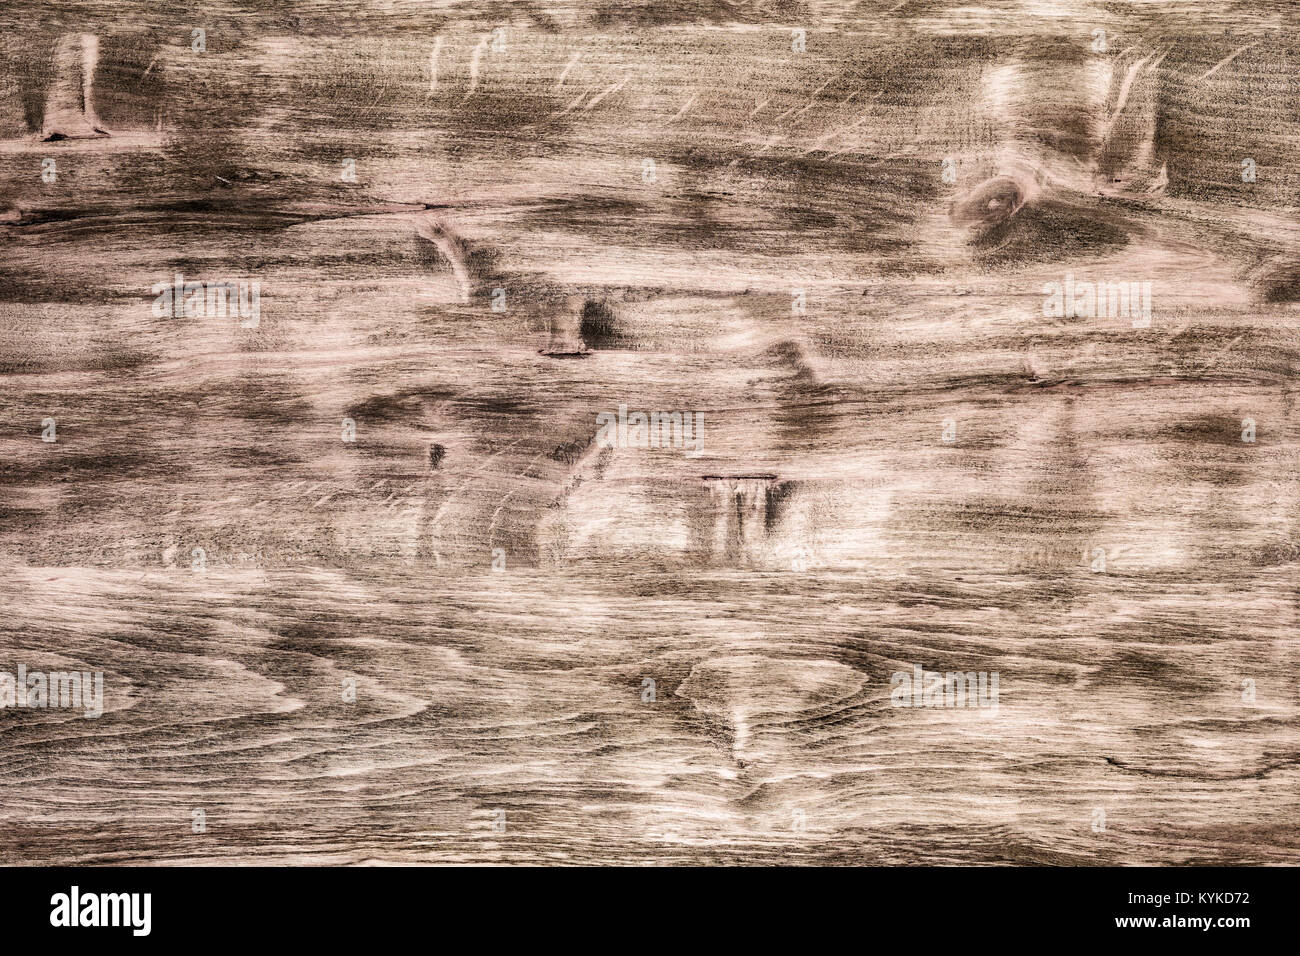 Solid wood background to the structural grain of the wood Stock Photo